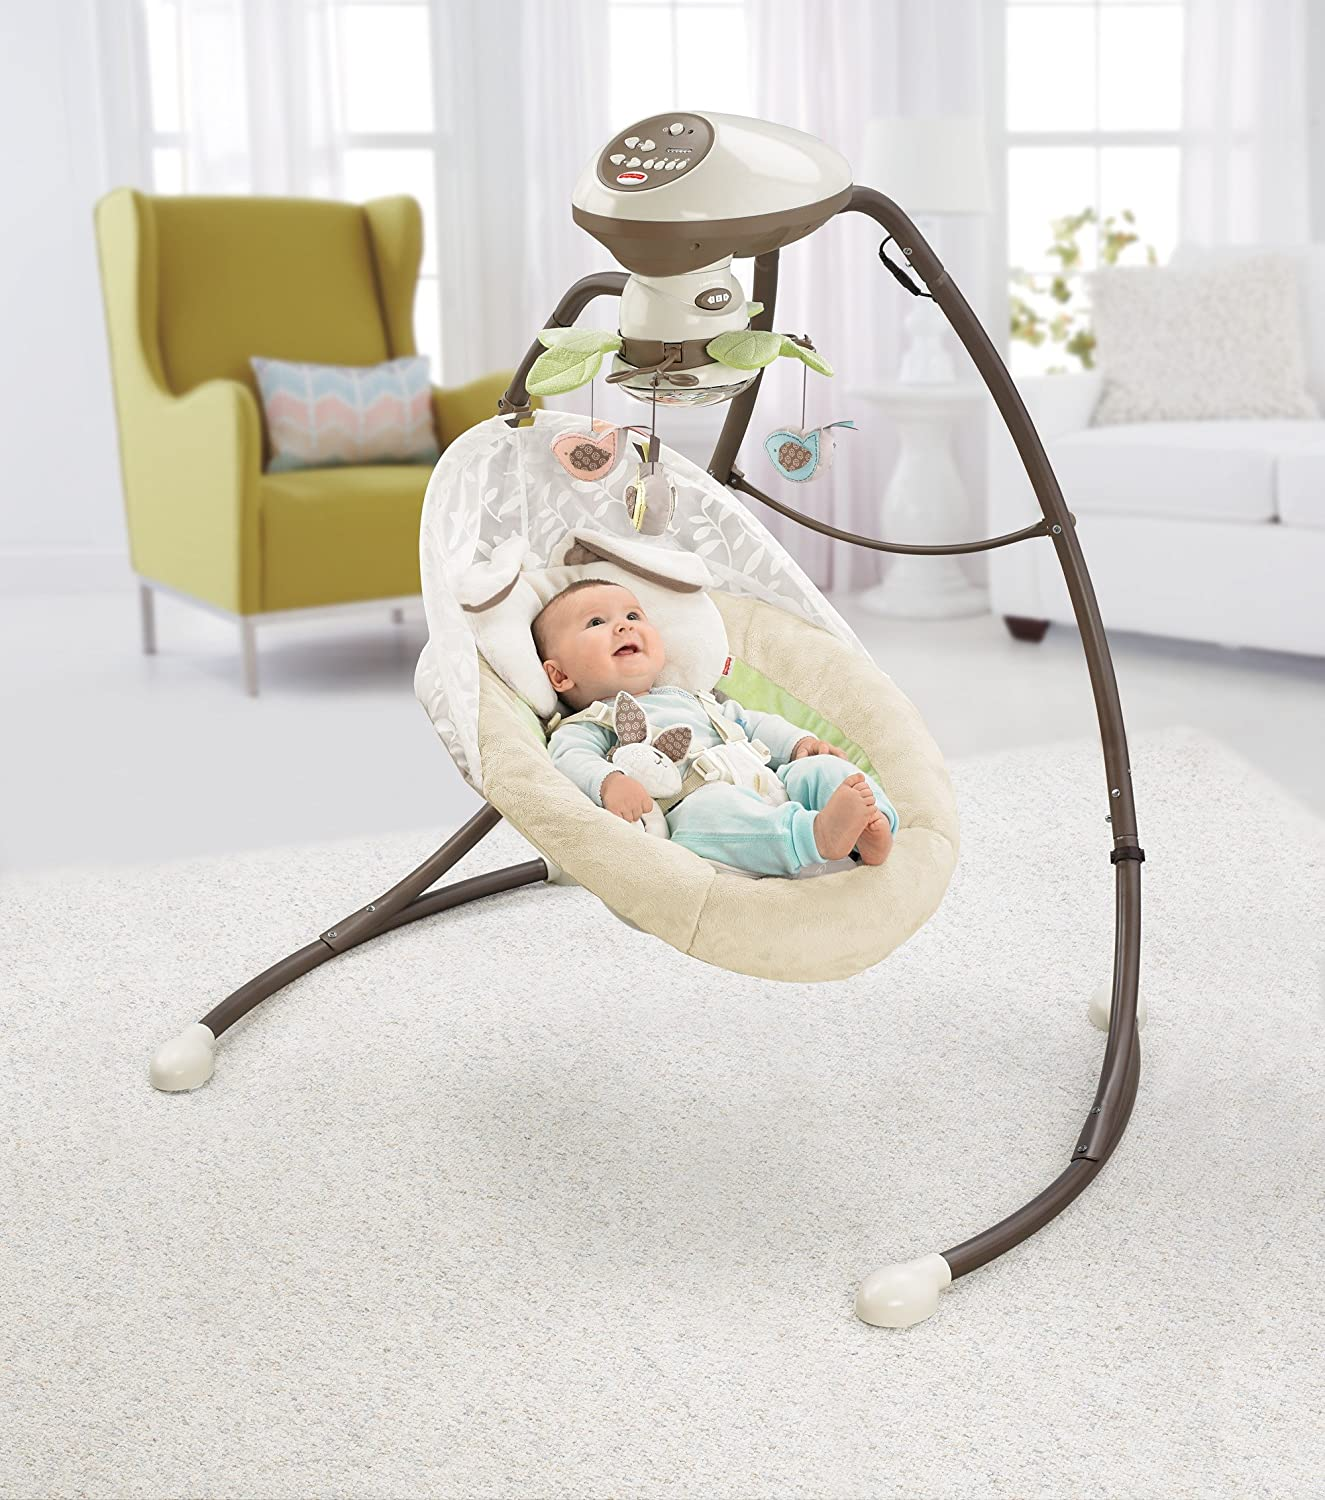 Amazon.com : Fisher-Price Snugabunny Cradle 'n Swing with Smart Swing  Technology : Baby